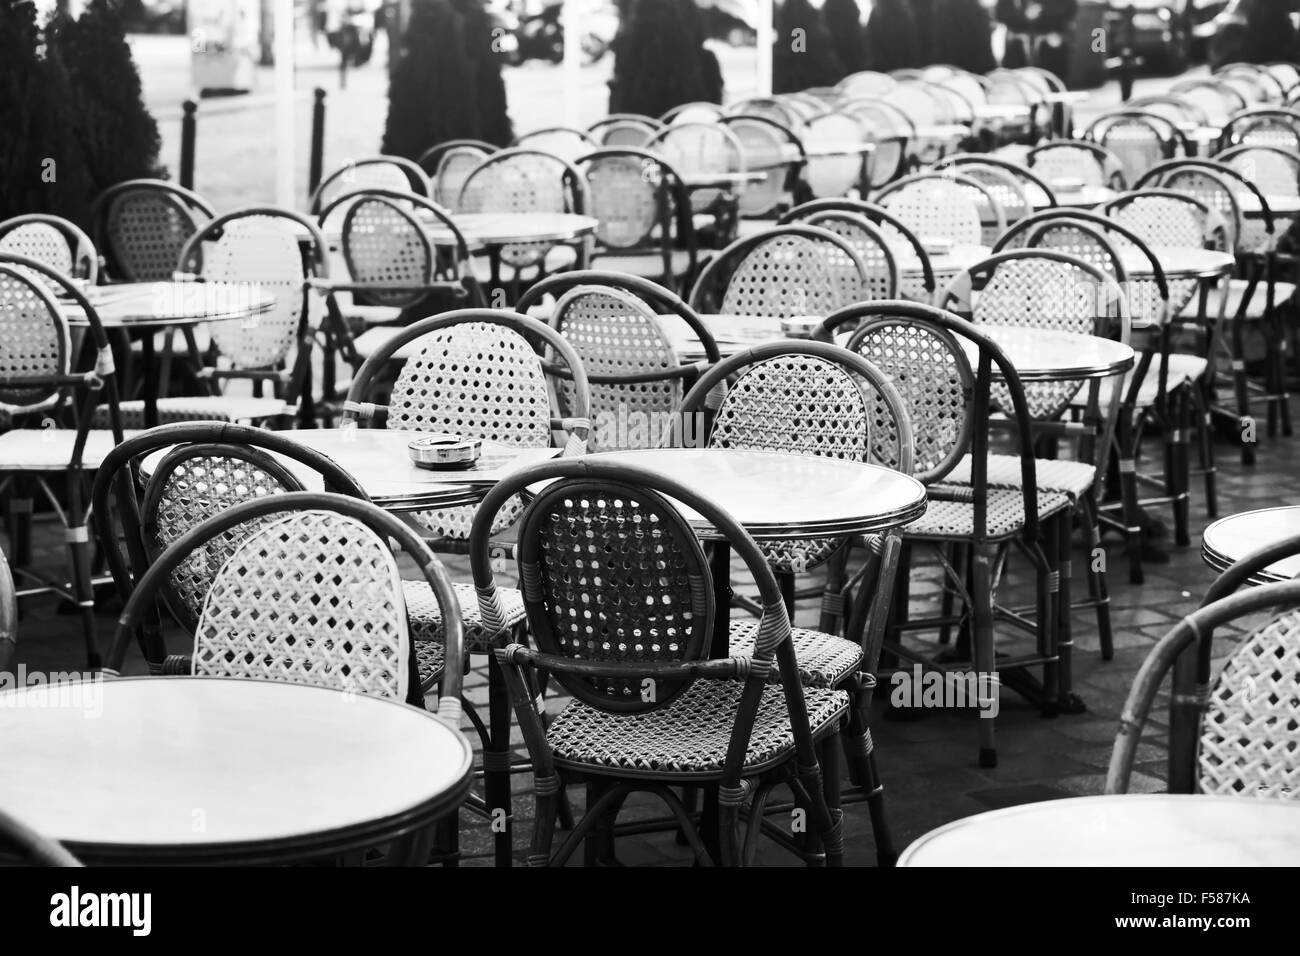 Vintage street cafe in paris black and white photo of wicker chairs and tables